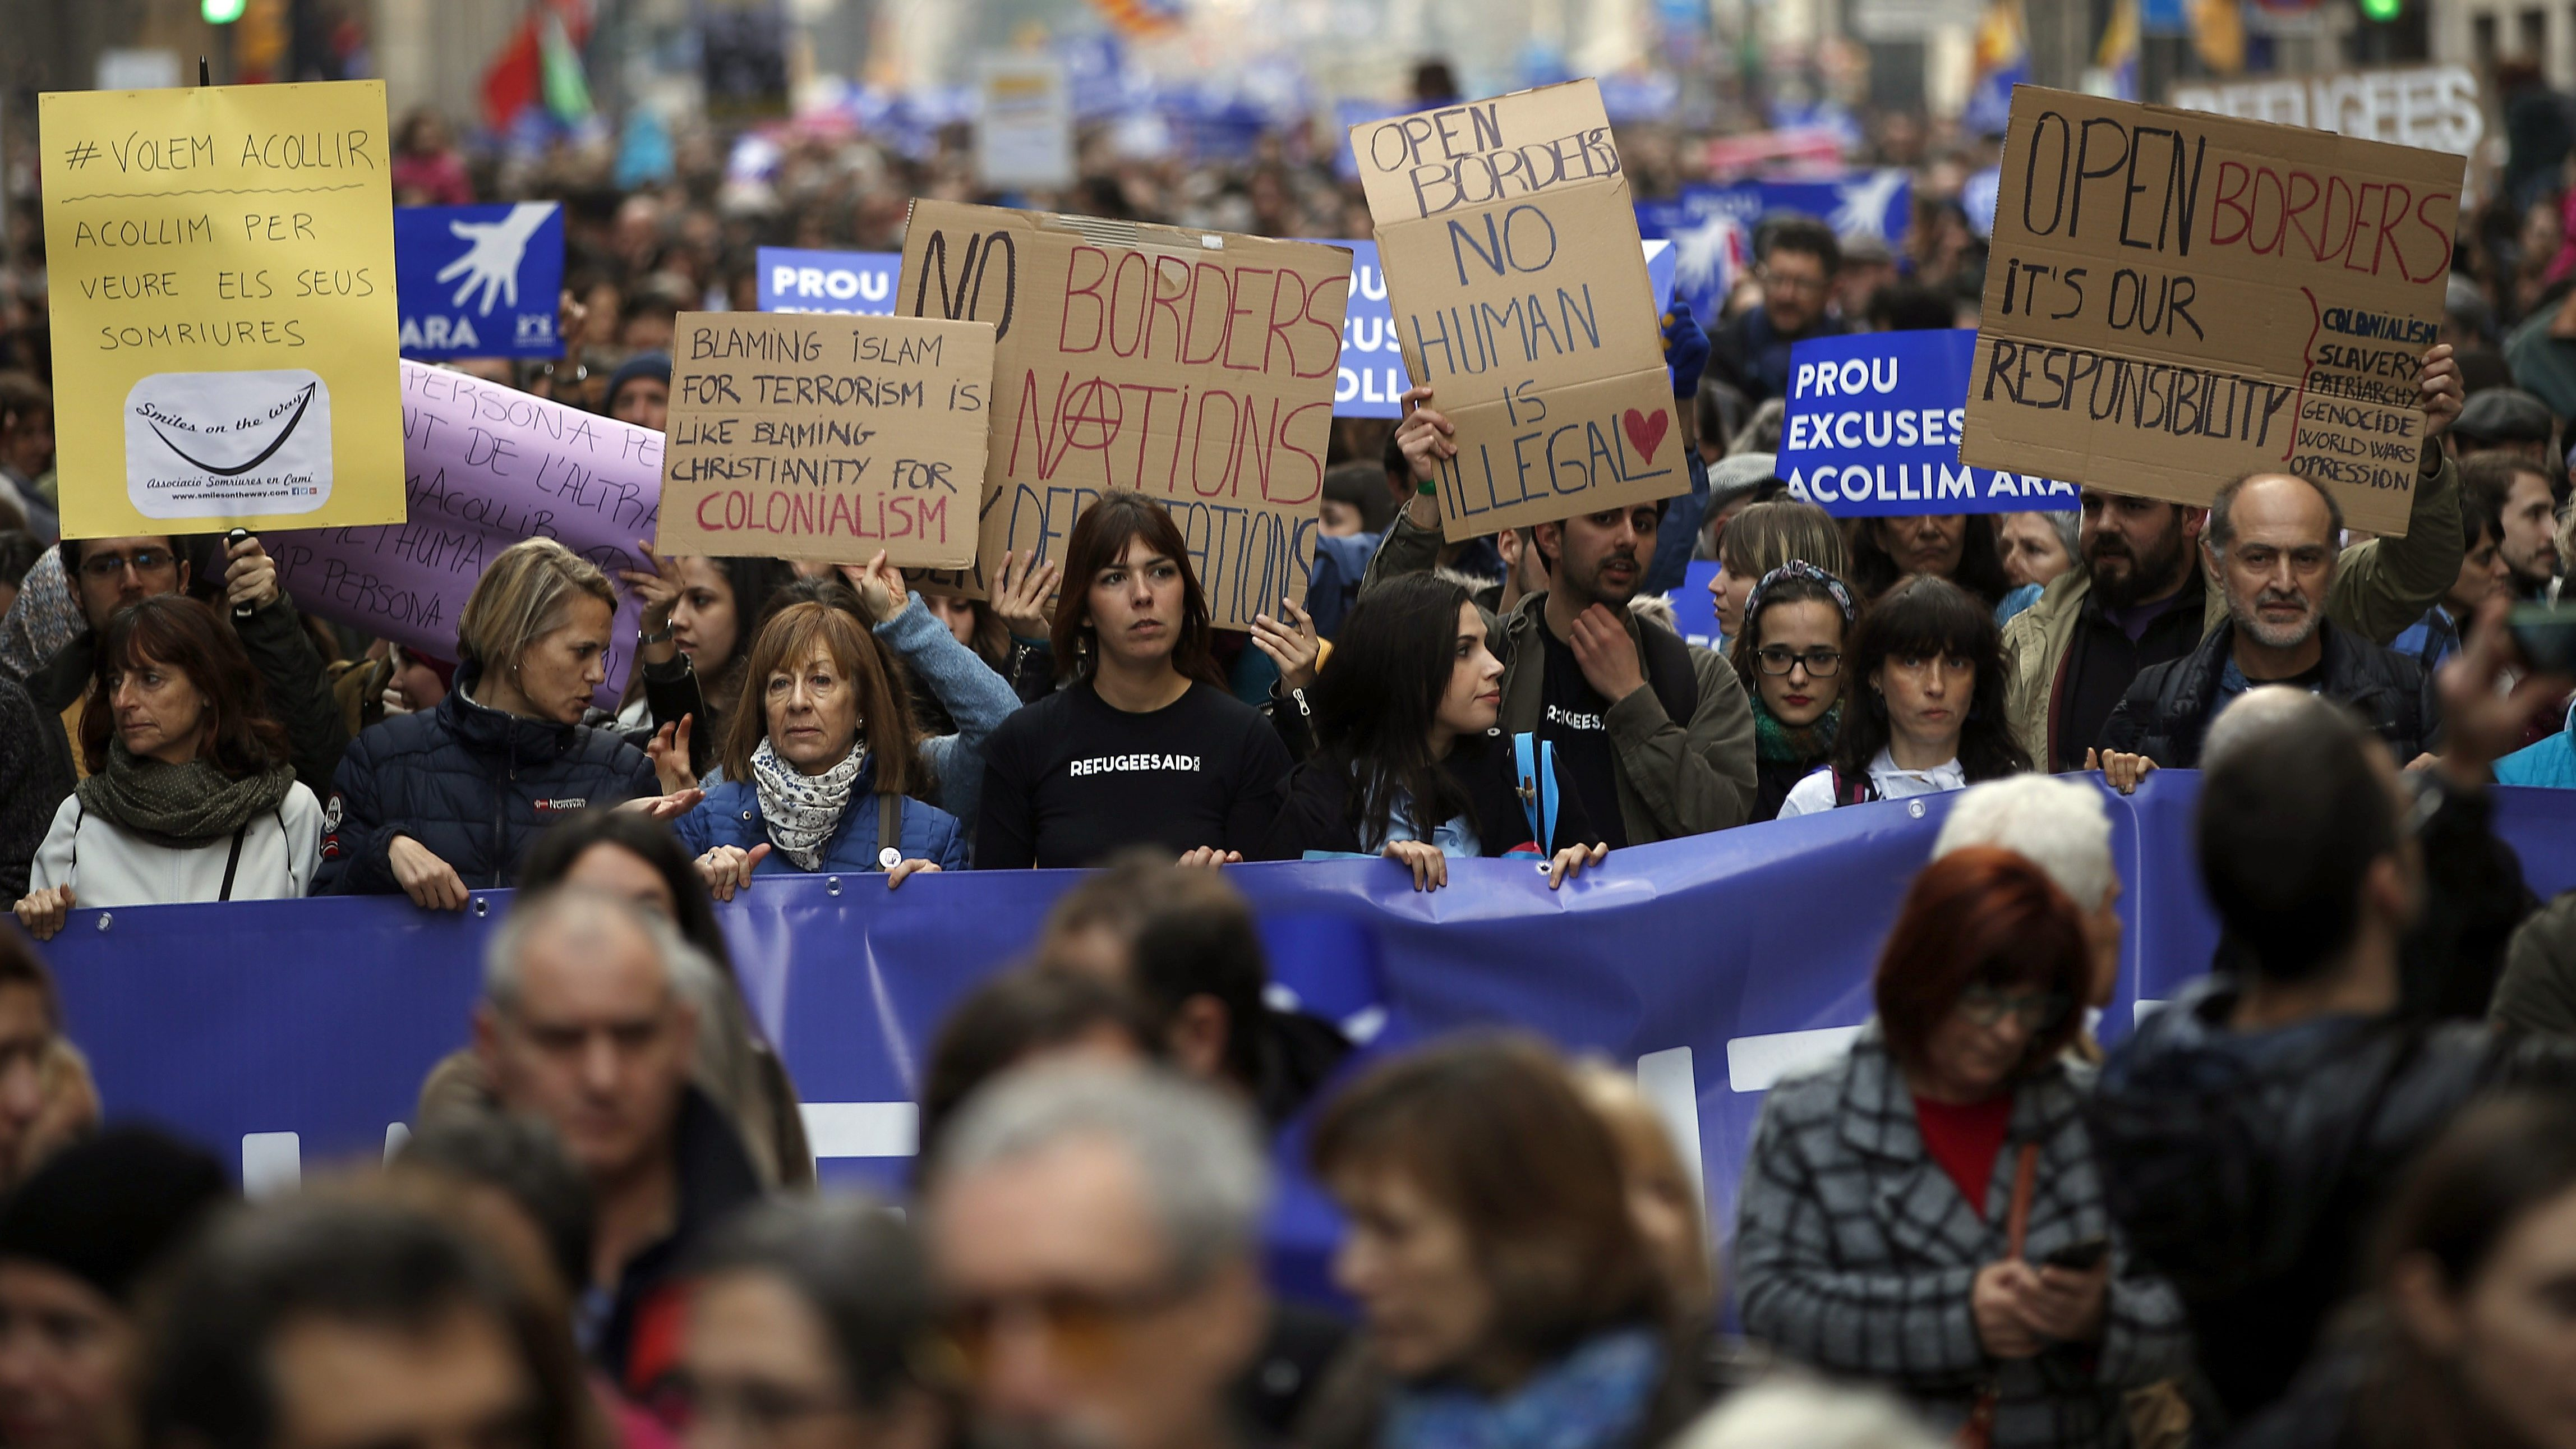 Protestors in Spain demand the government take in more refugees